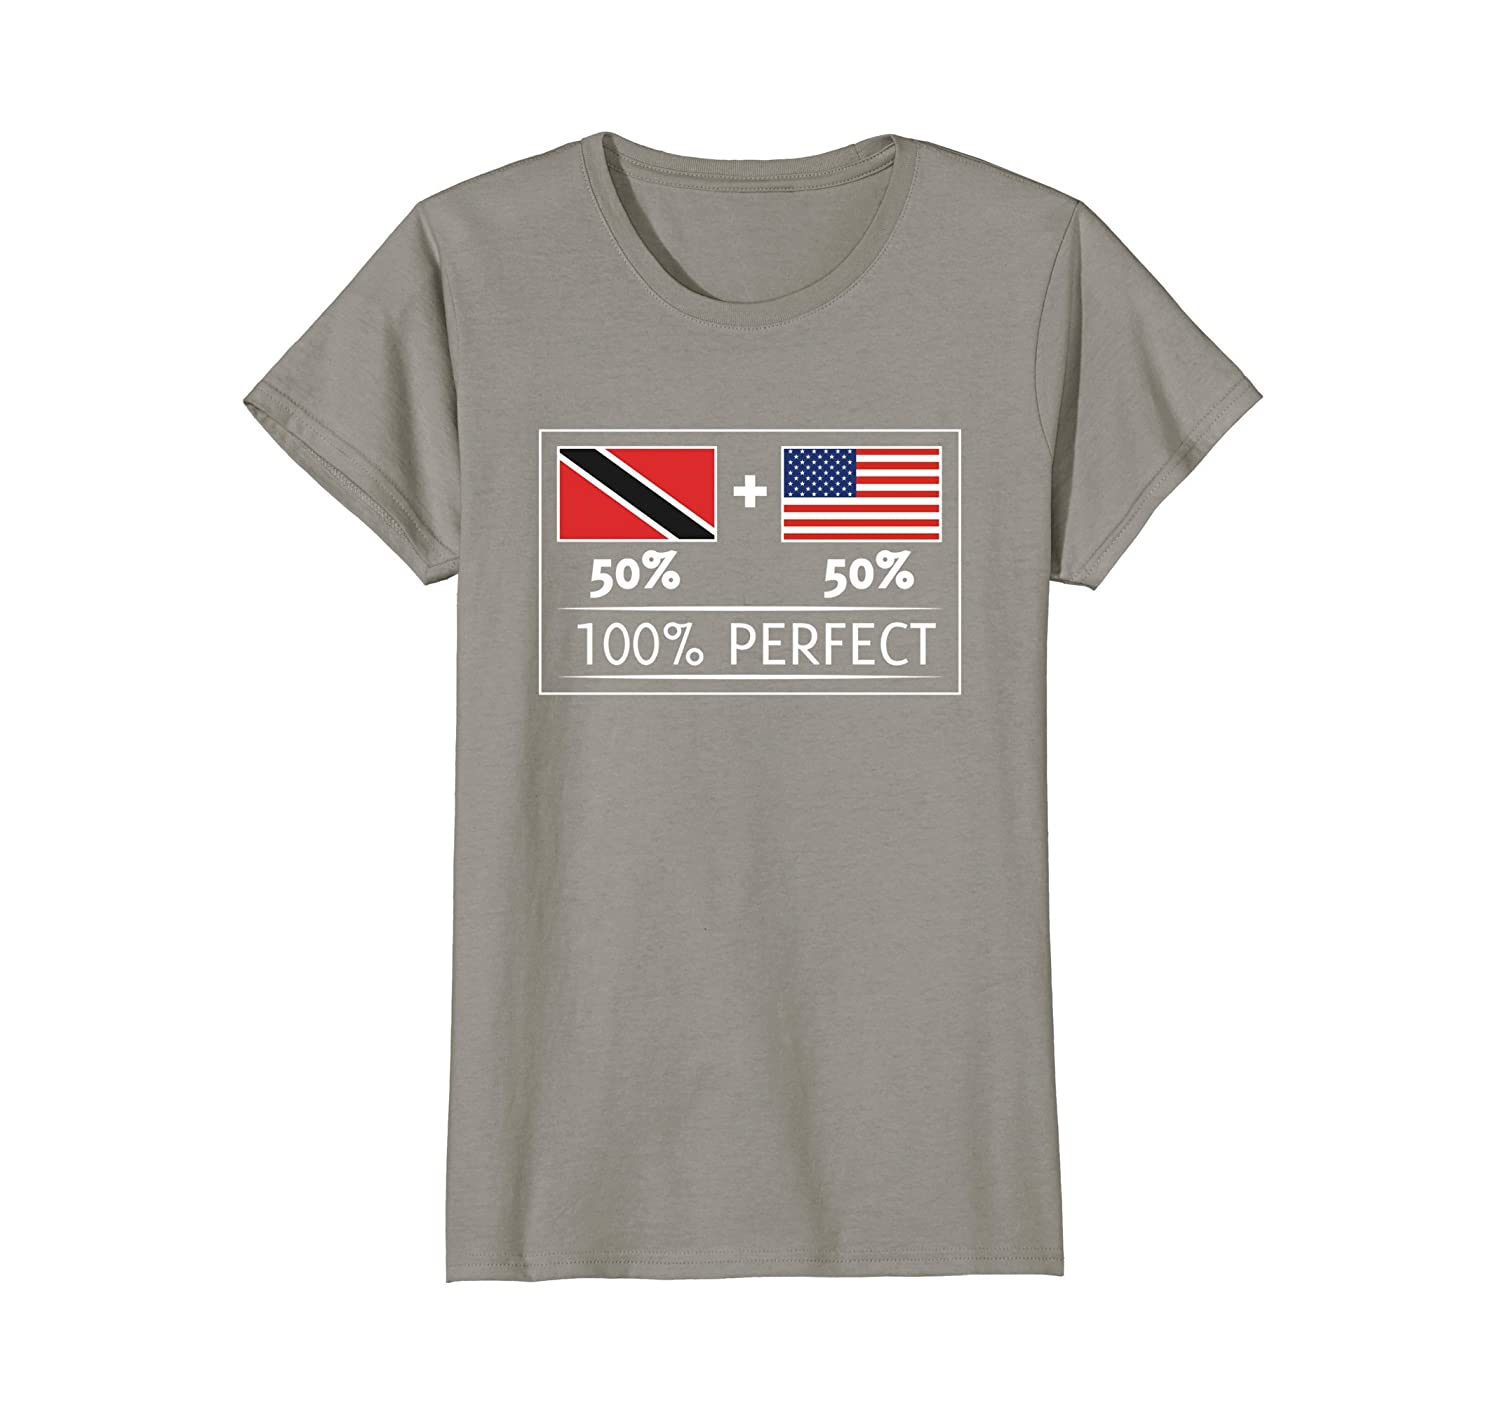 Amazon com: 50% Trinidad and Tobago 50% USA Flags 100